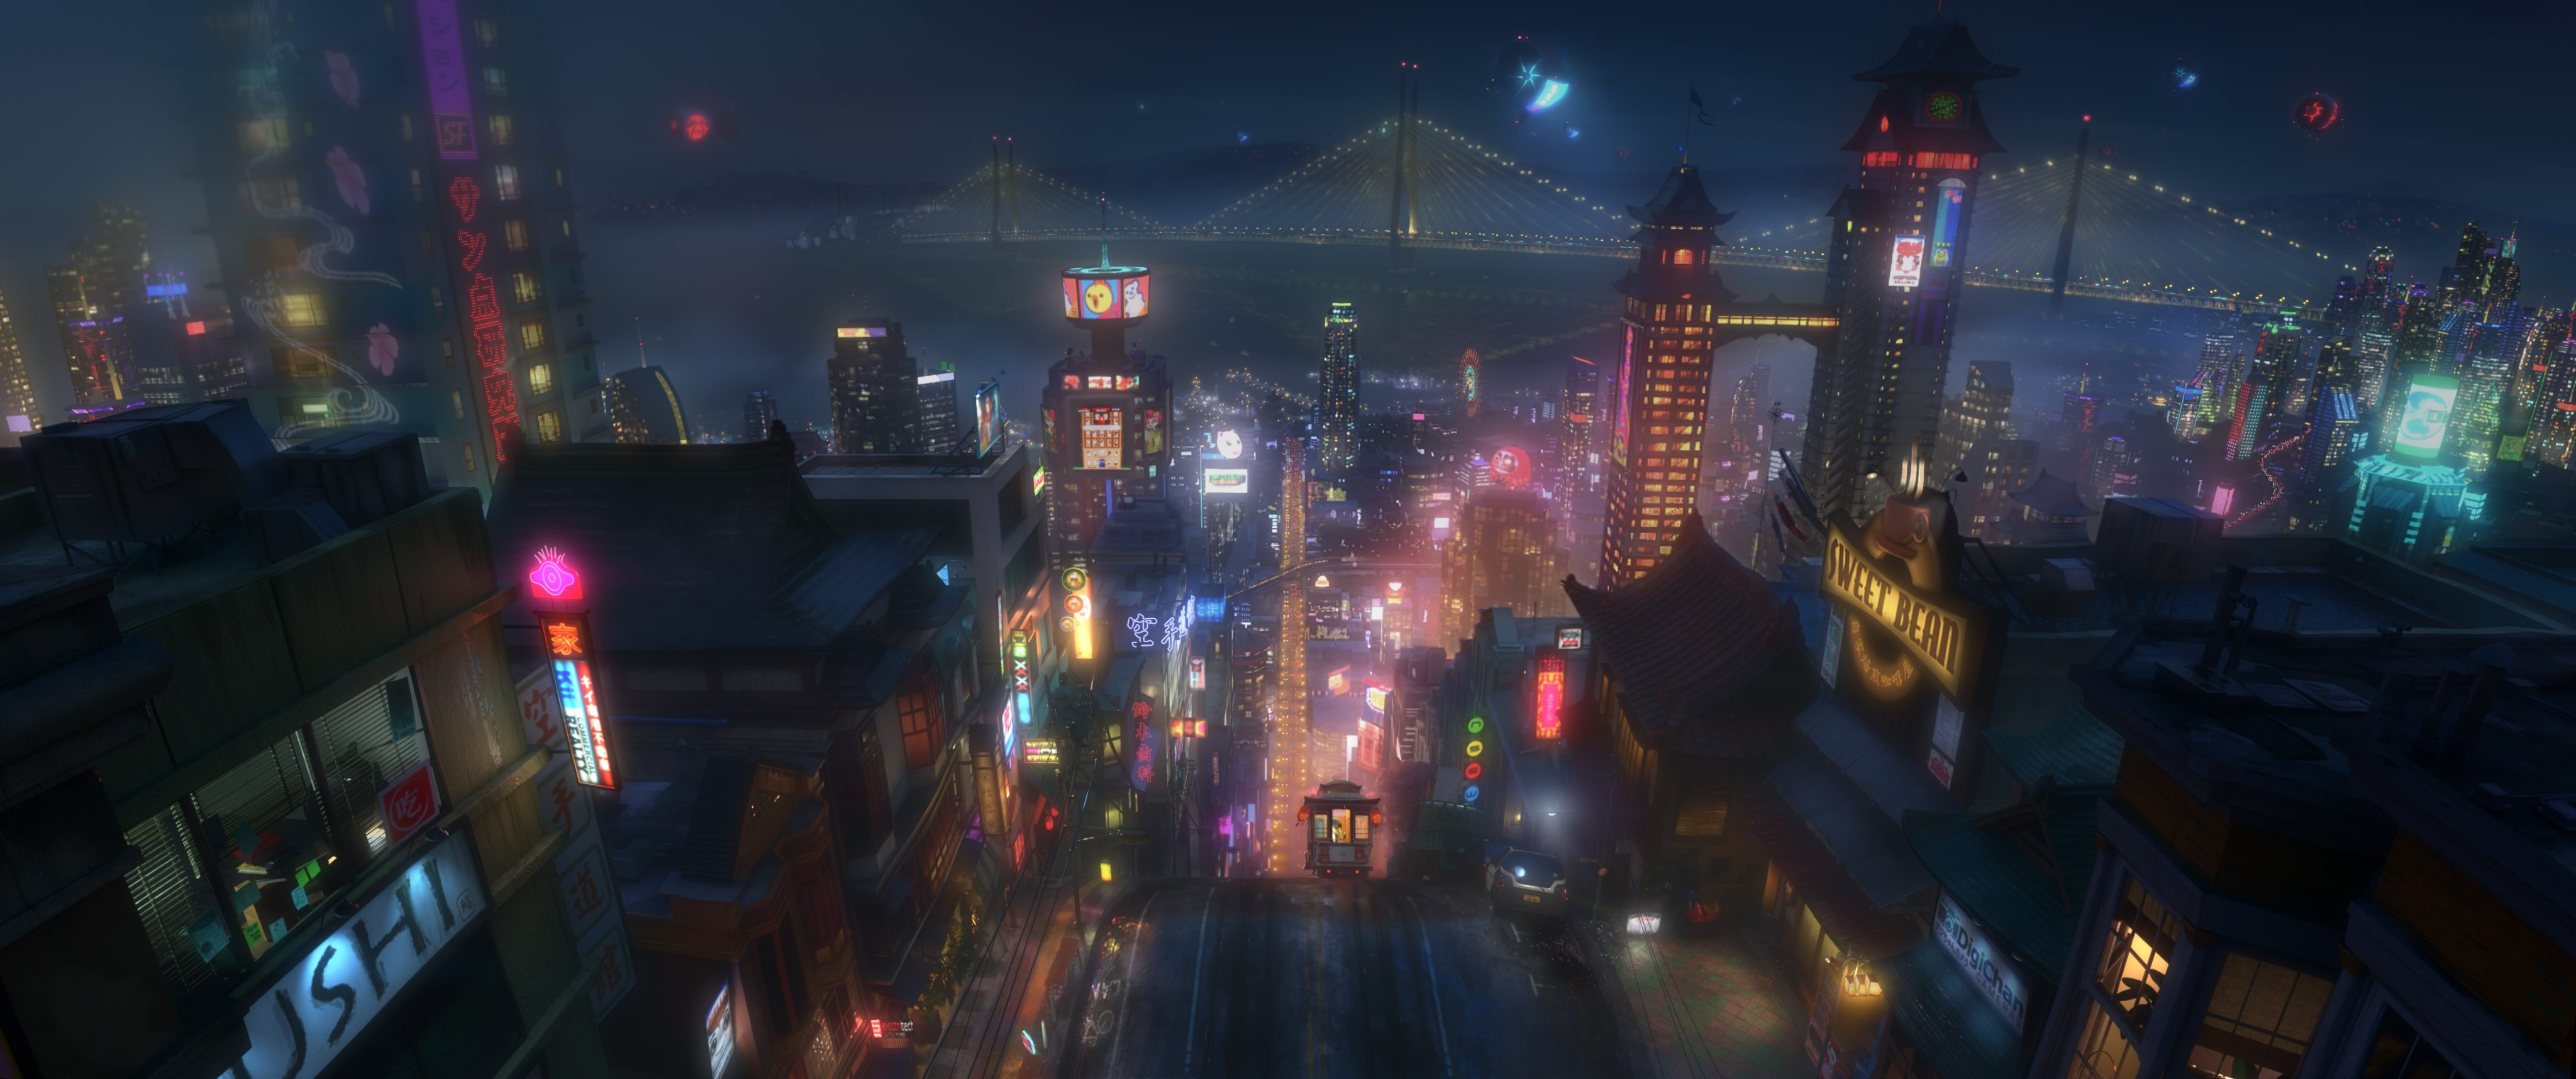 "Concept art: The high-tech city of San Fransokyo is home to brilliant robotics prodigy Hiro Hamada and his team of first-time crime fighters in ""Big Hero 6"". ©2013 Disney. All Rights Reserved."